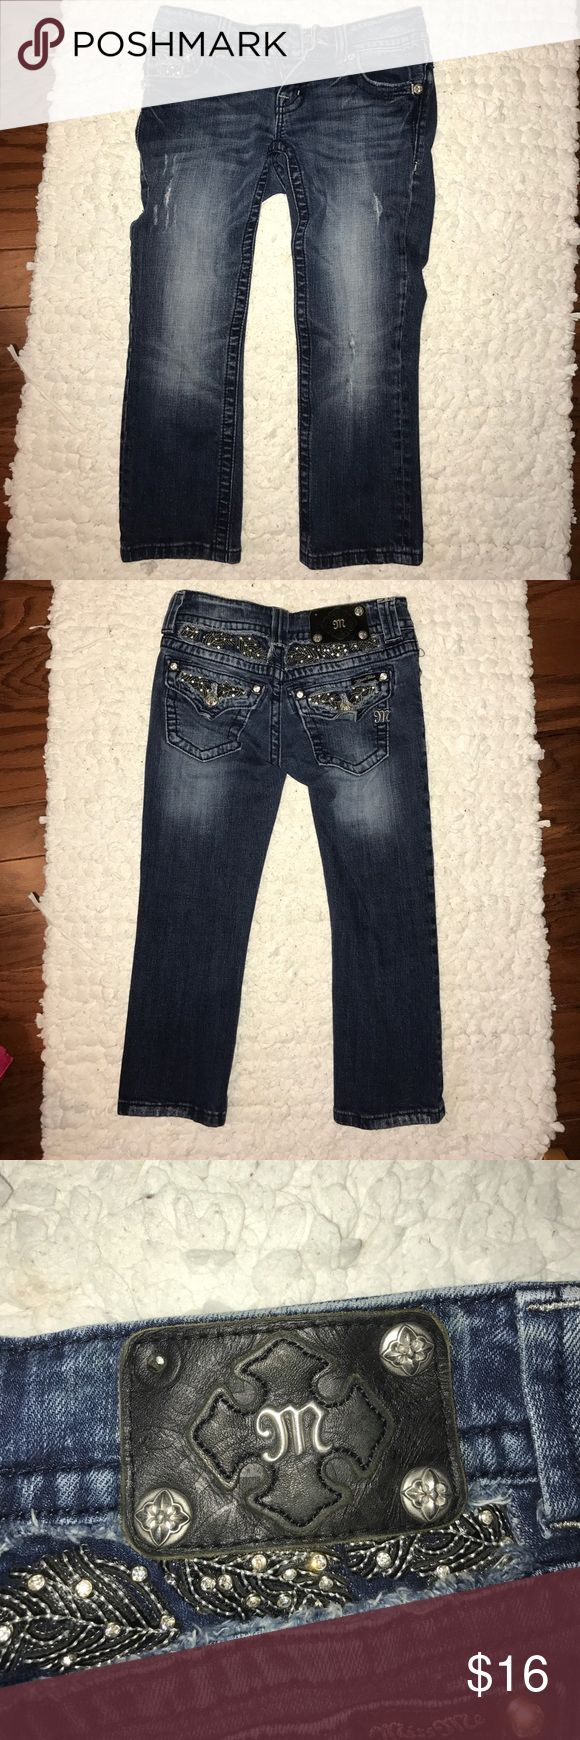 Authentic miss me capris Miss me capris' only flaw is the 1 missing button in the 3rd picture, other than that it's great!! Barely worn. Miss Me Jeans